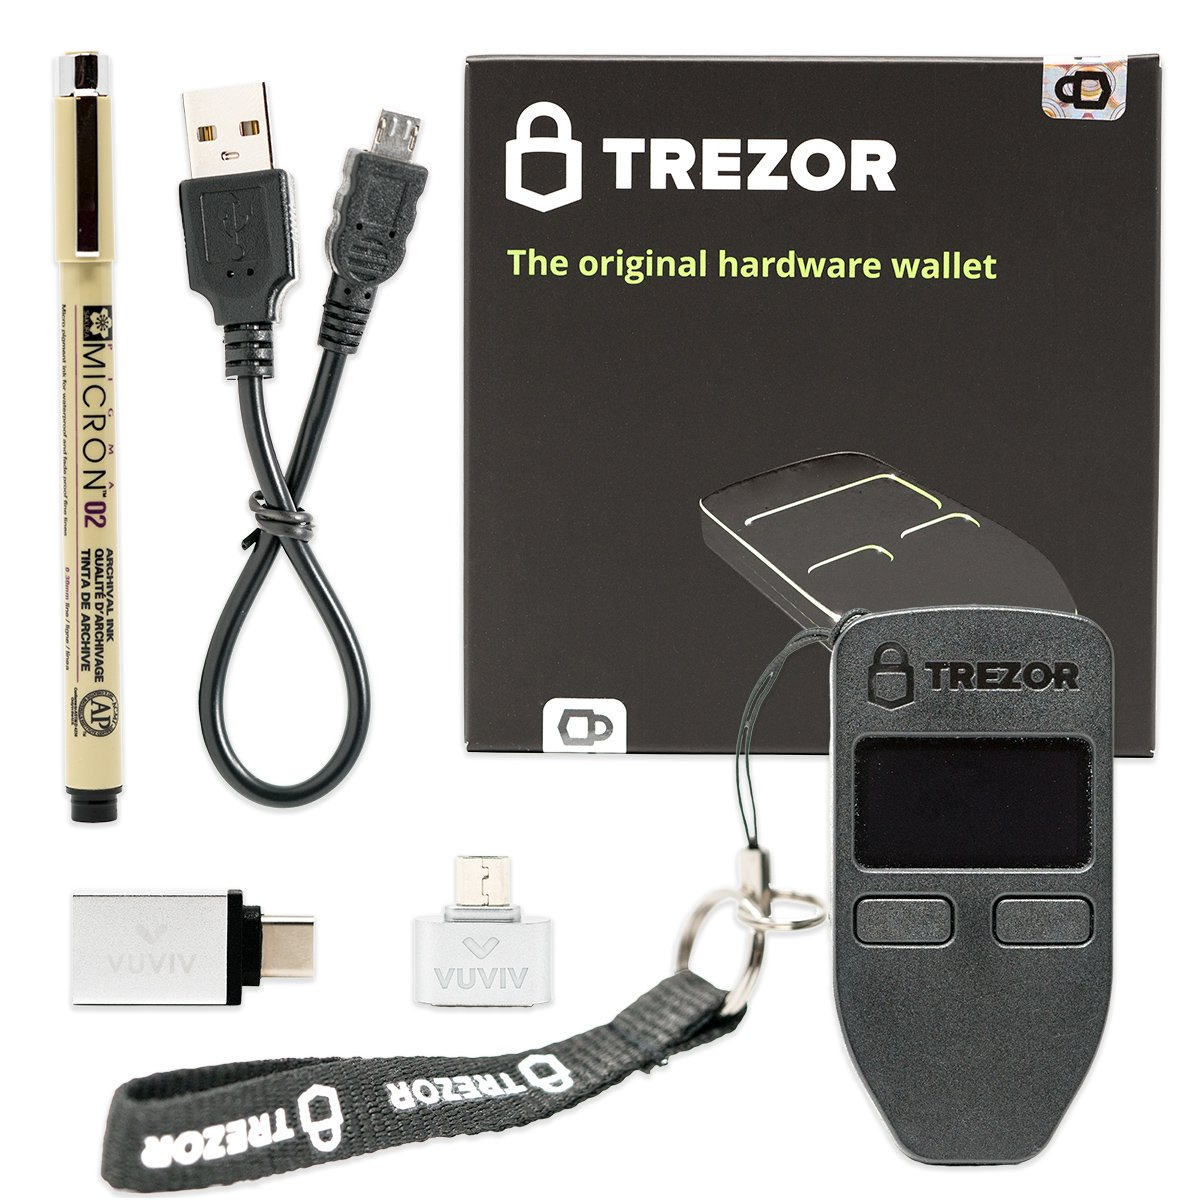 VUVIV Trezor (Black) Bitcoin Hardware Wallet Bundle With Micro-USB Adapter, USB-C Adapter for MacBook and Sakura Pigma Archival Ink Pen (4 items)